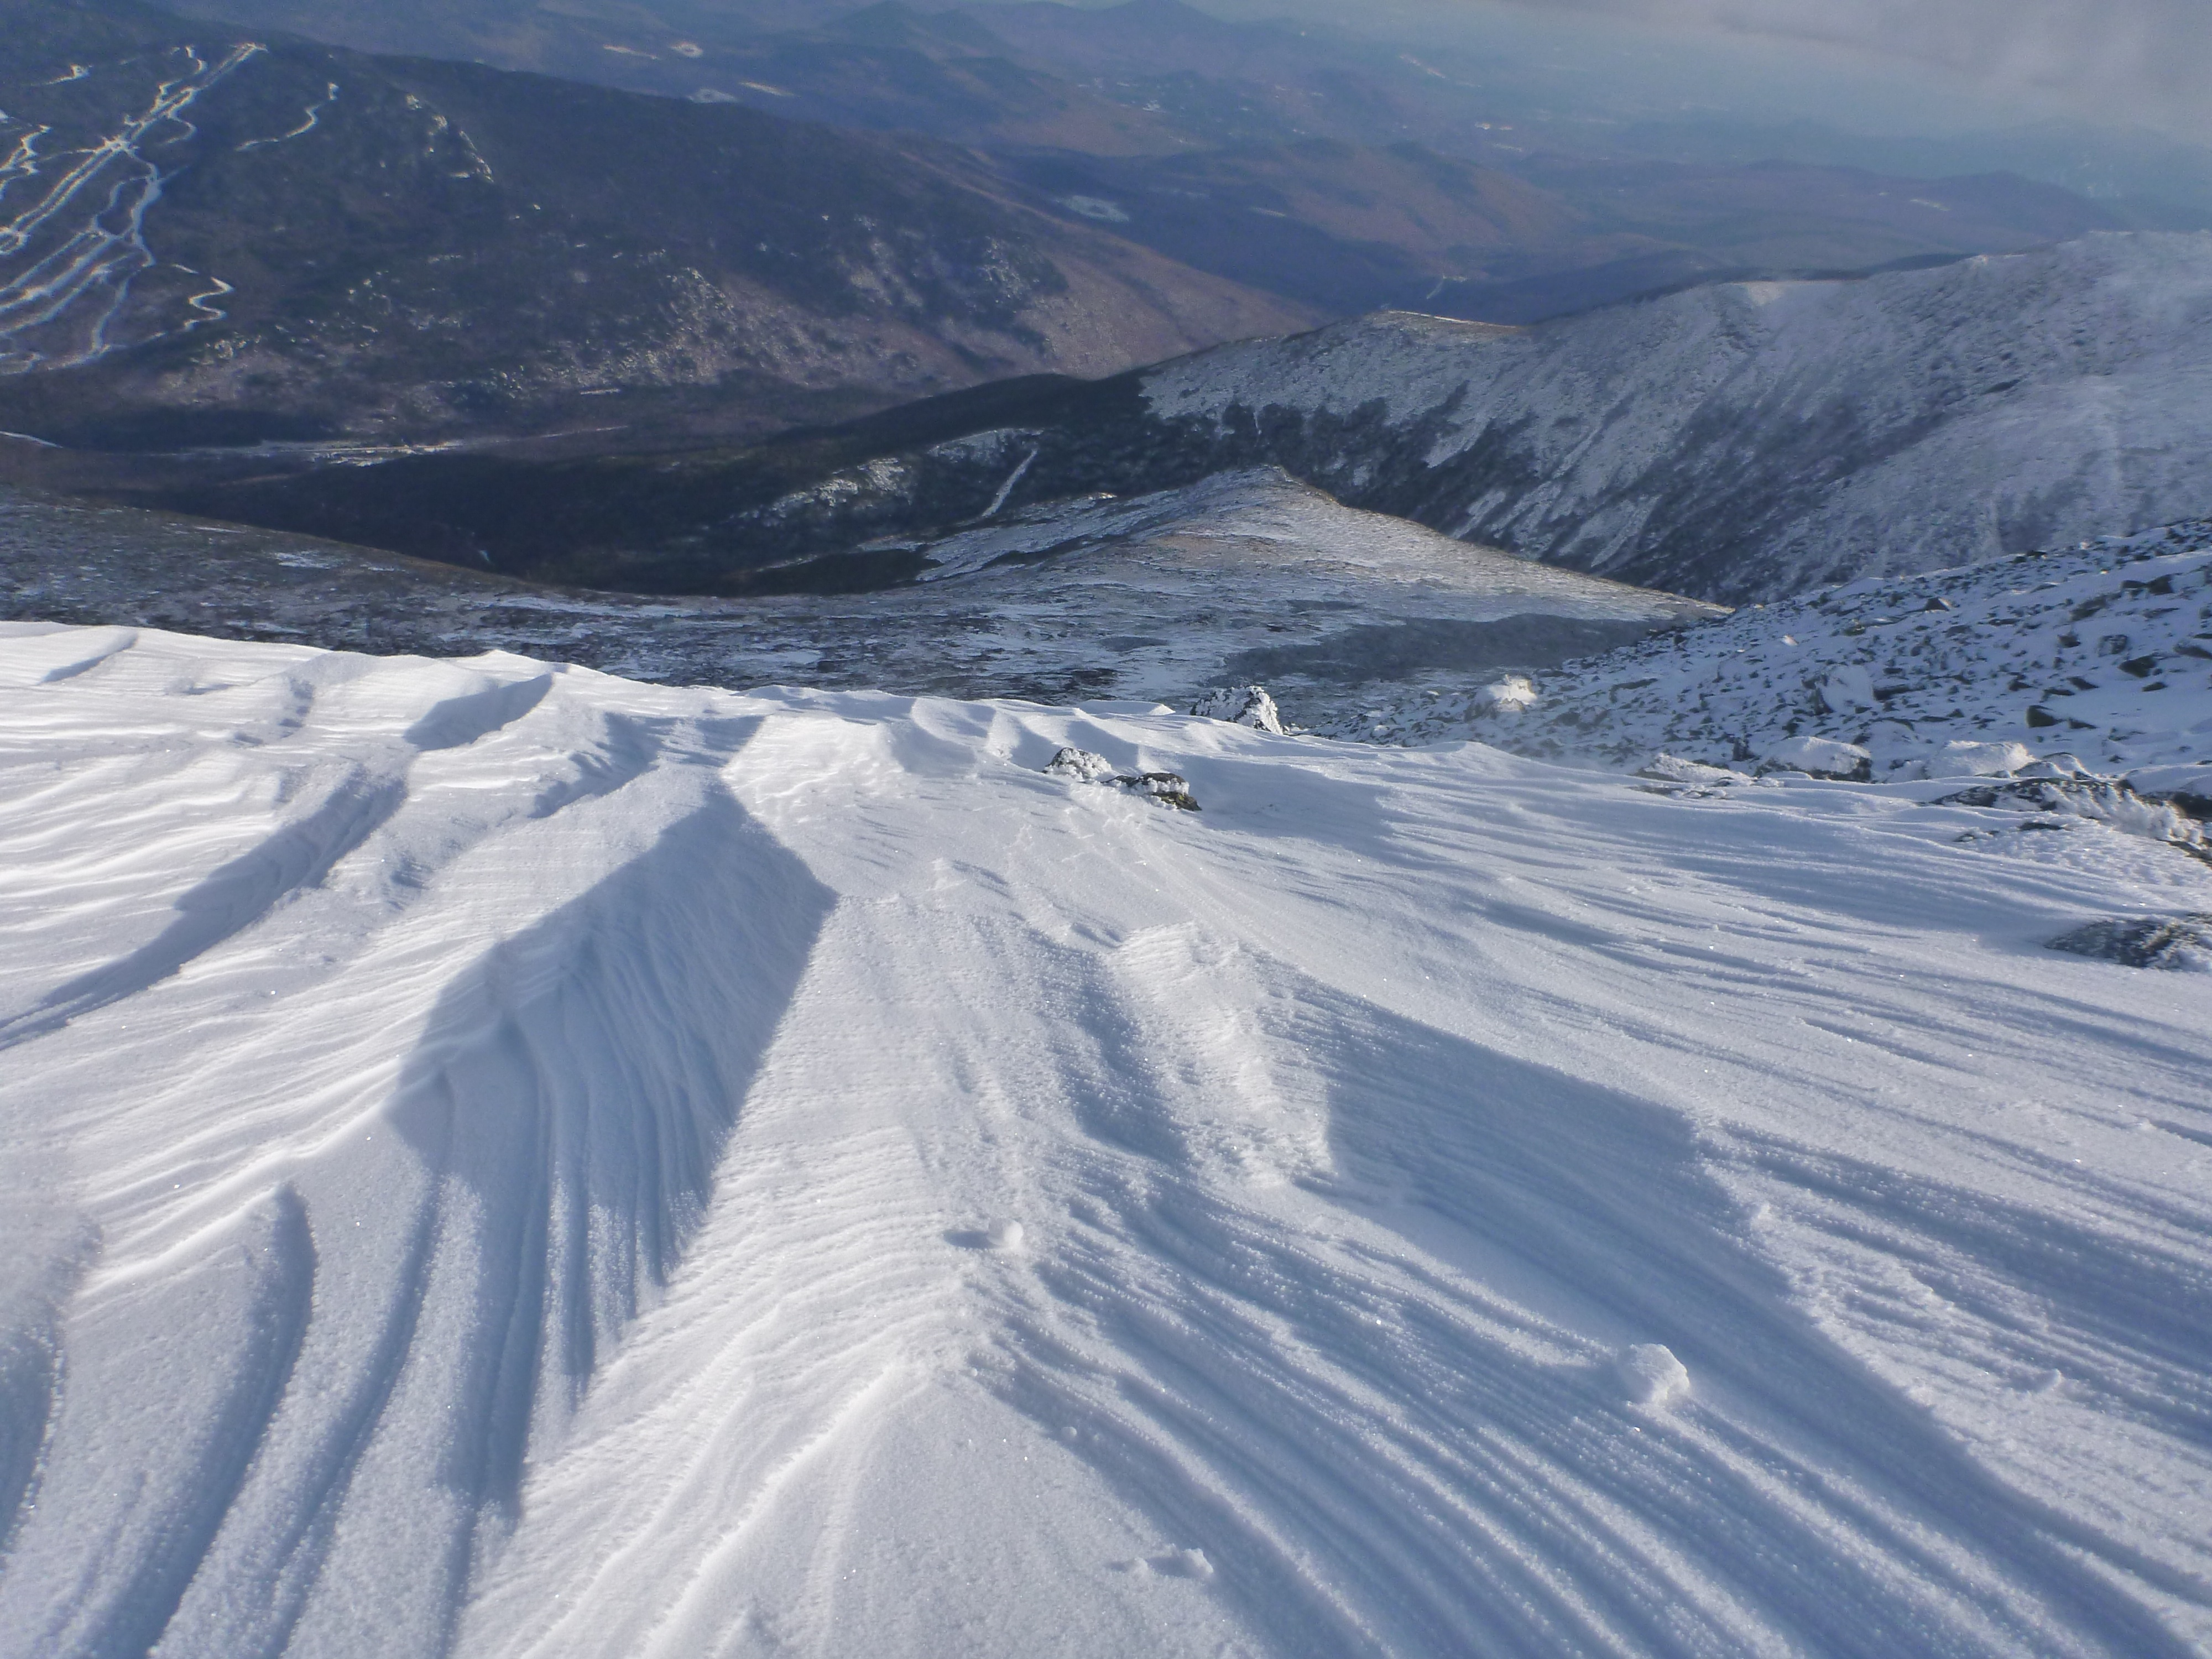 East Snowfields of Mount Washington (Courtesy of http://www.accuweather.com/en/weather-blogs/clarkb/my-favorite-pictures-part-3-skiing/83105)